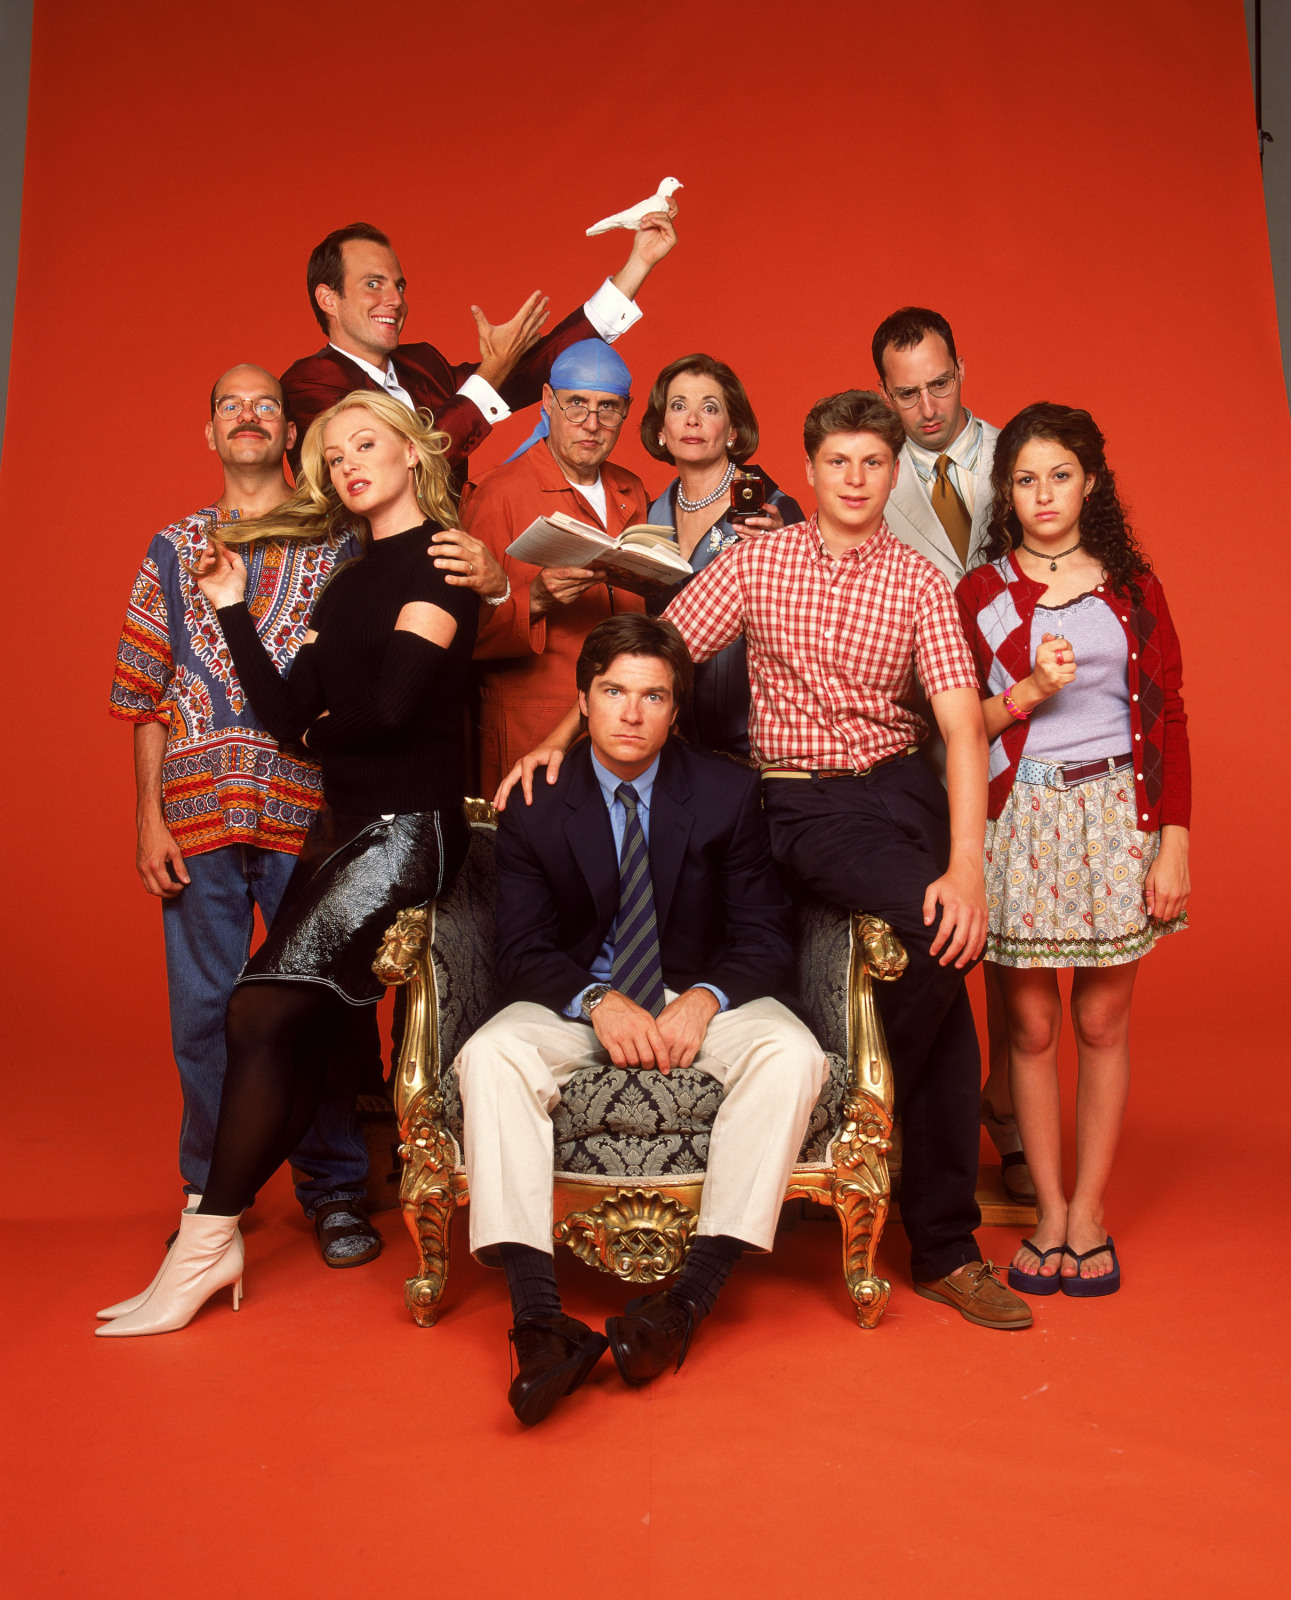 Arrested Development starts filming new season TOMORROW! Netflix to air episodes 2013